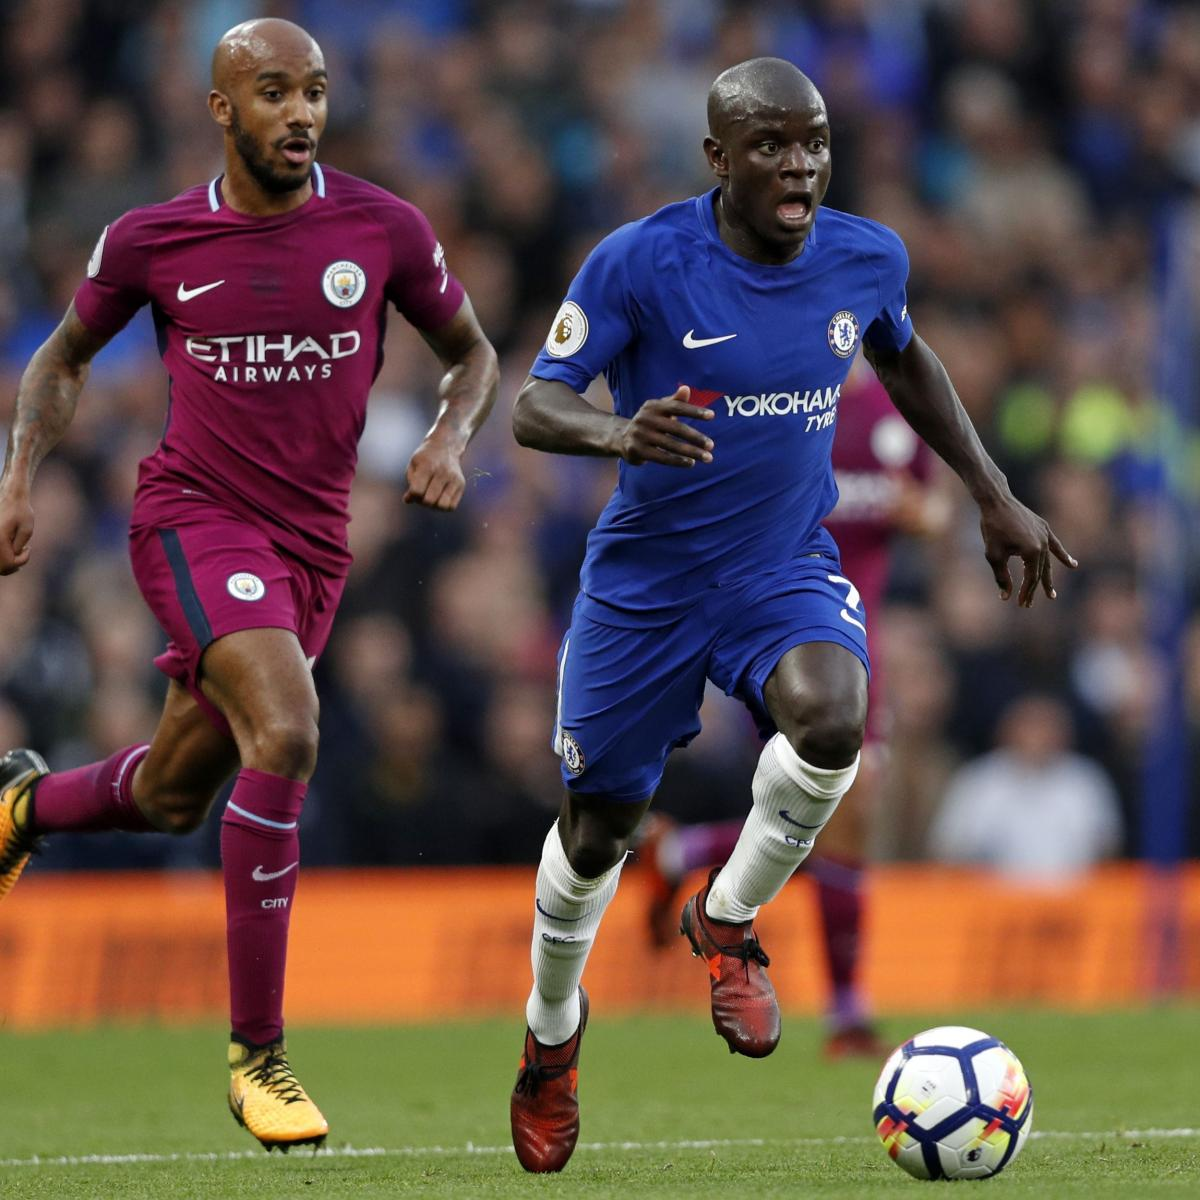 N'Golo Kante Reportedly Out for 2-3 Weeks, Will Miss Chelsea UCL Games vs. Roma